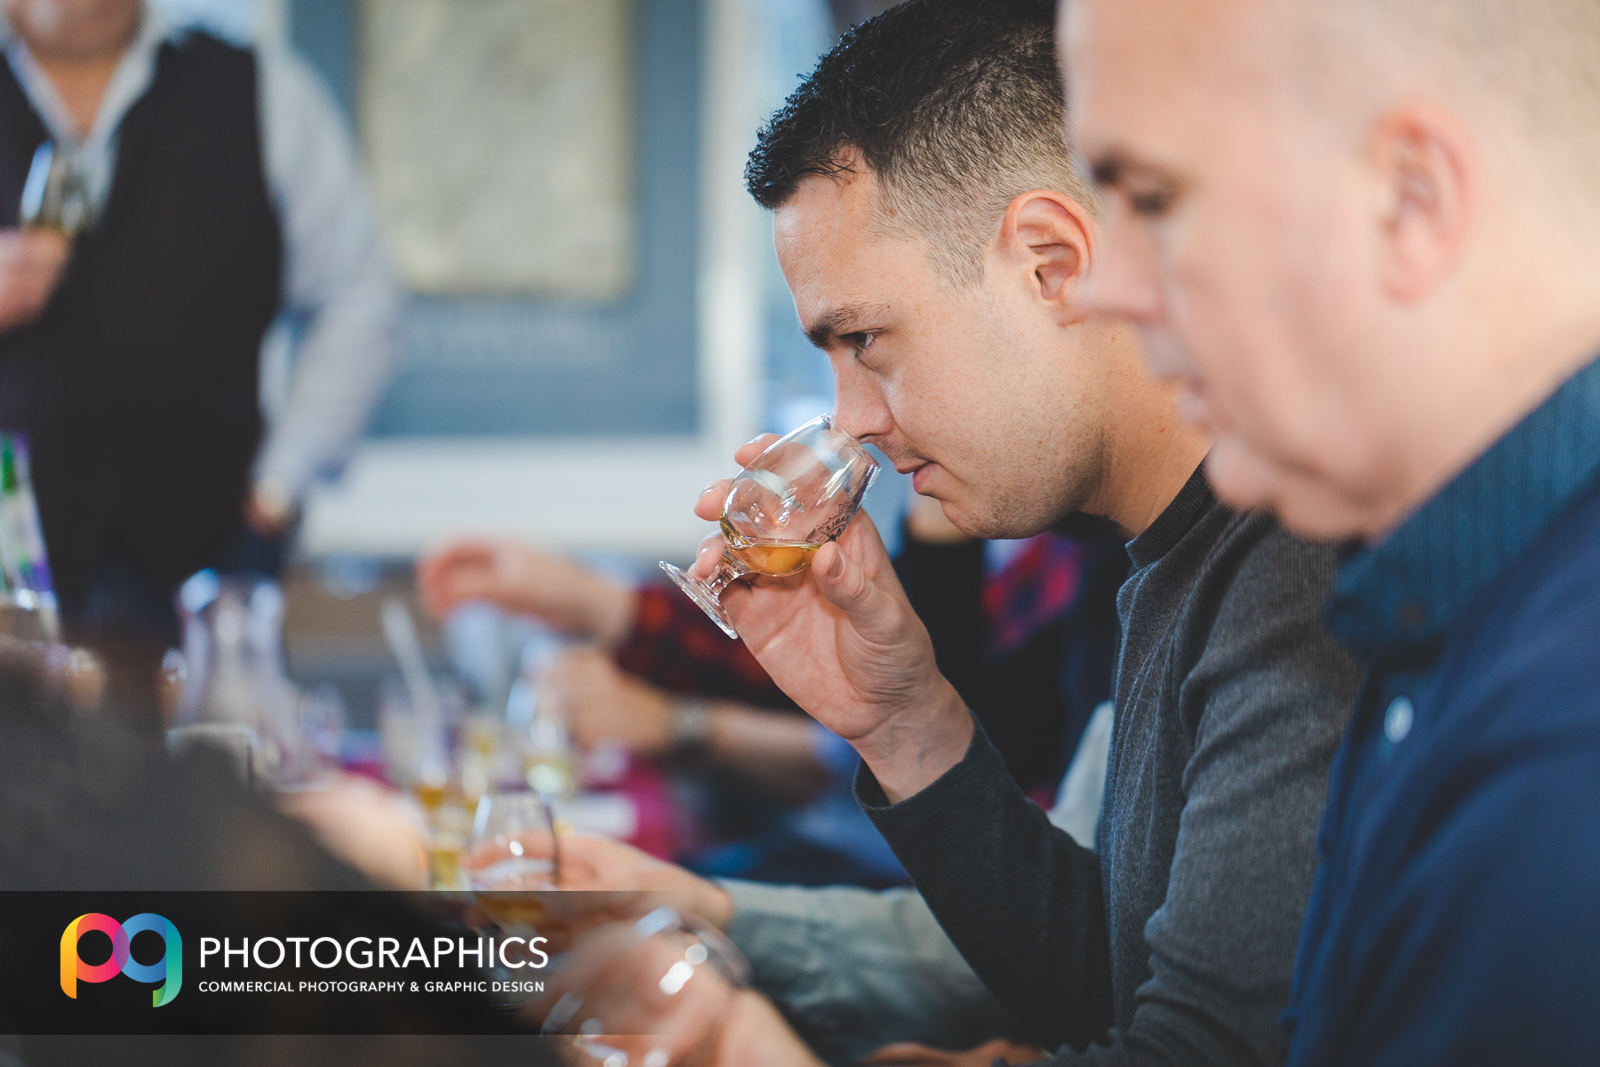 whisky-tasting-event-photography-glasgow-edinburgh-scotland-4.jpg